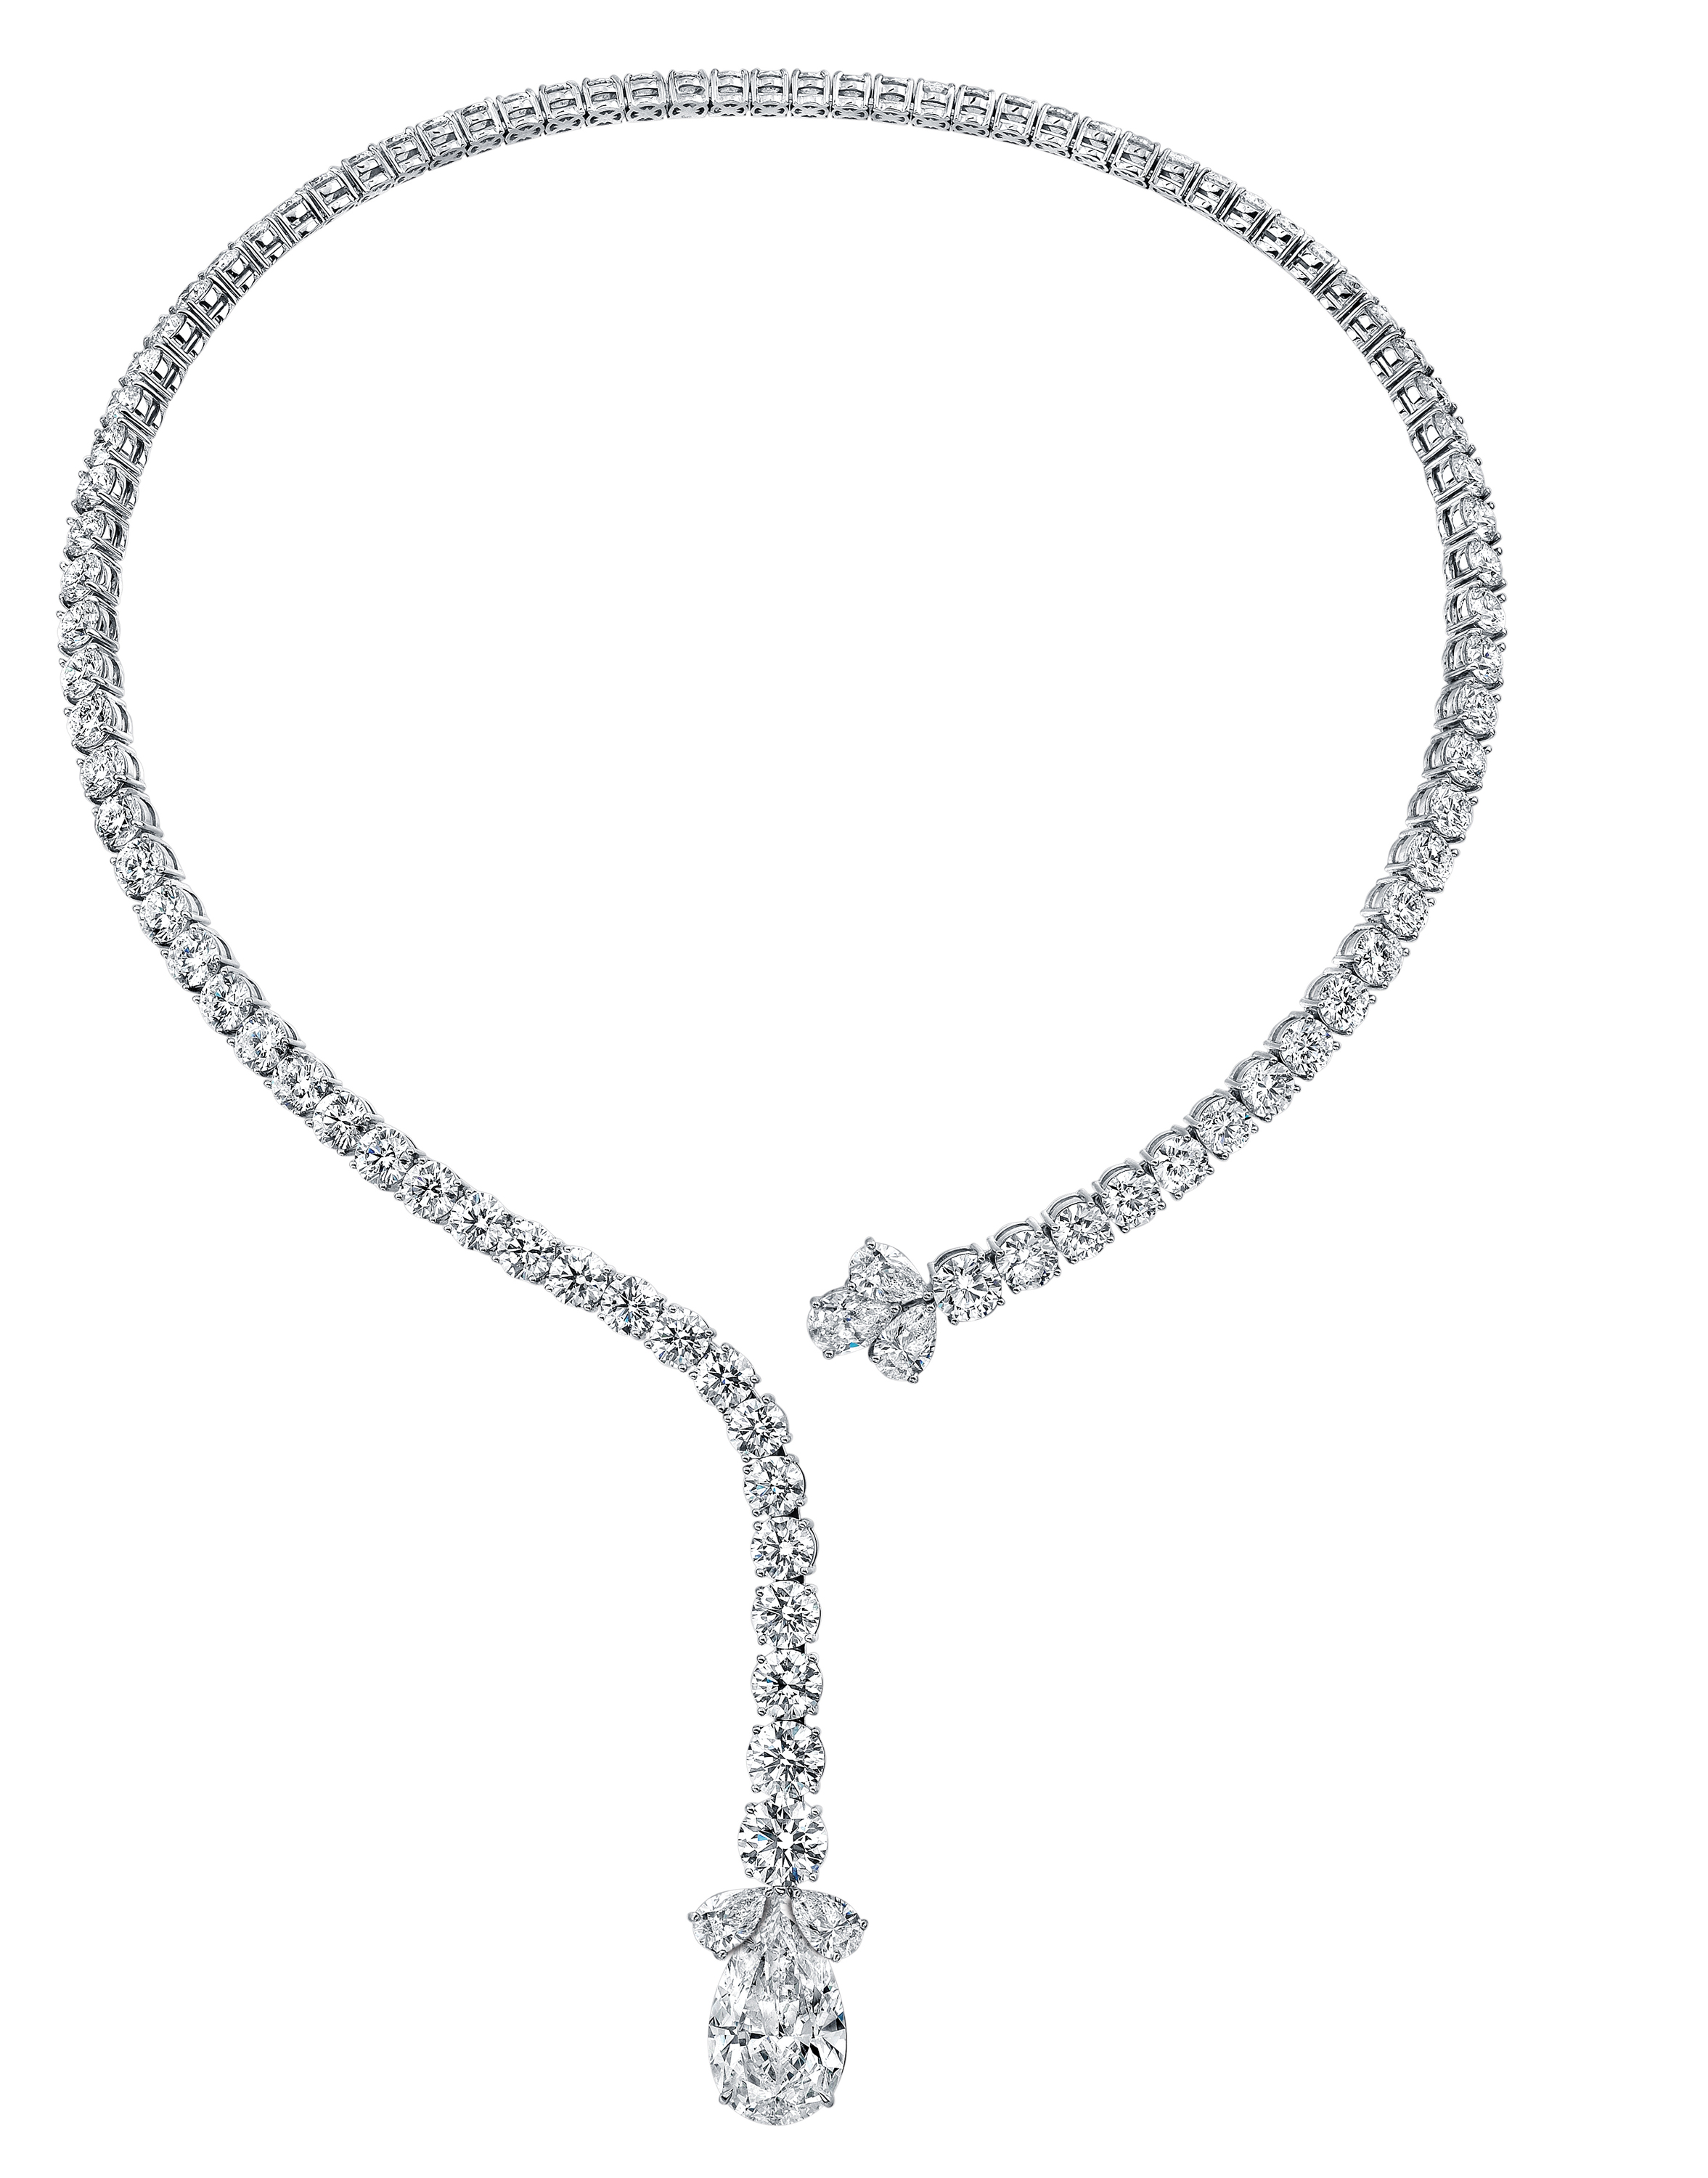 Norman SIlverman diamond collar necklace | JCK On Your Market